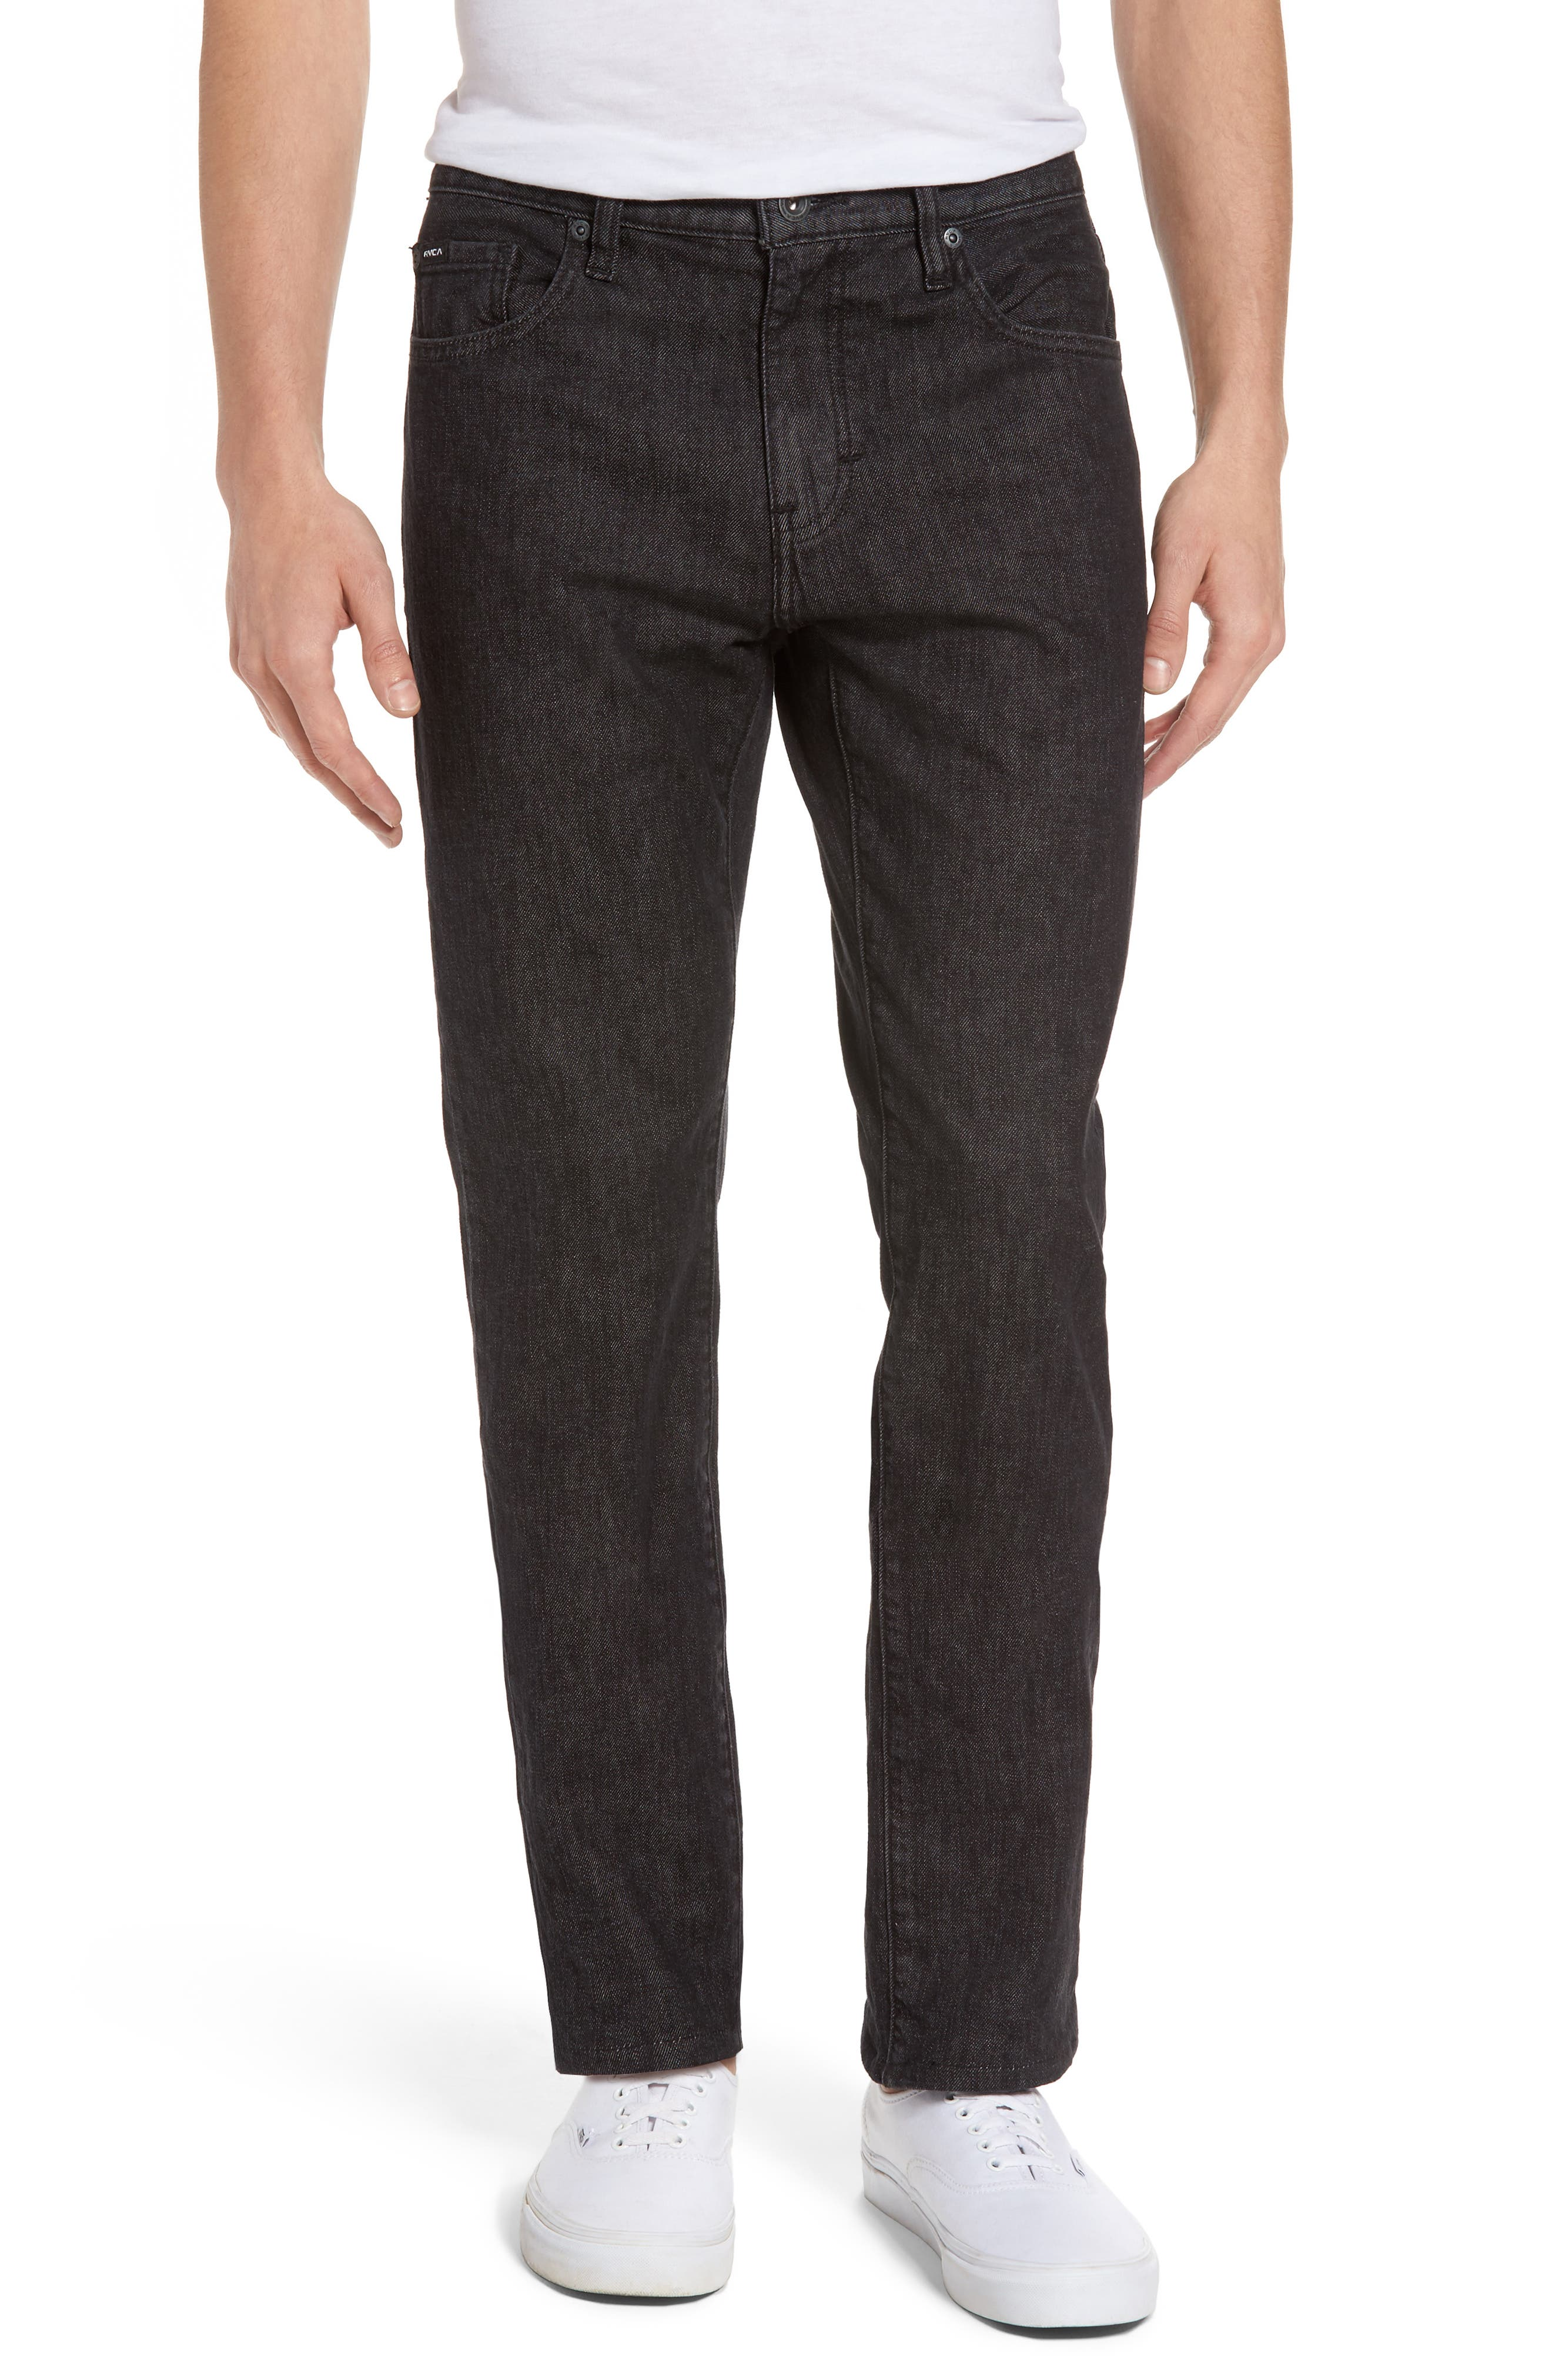 RVCA Daggers Slim Fit Jeans (Heritage Black) (Online Only)